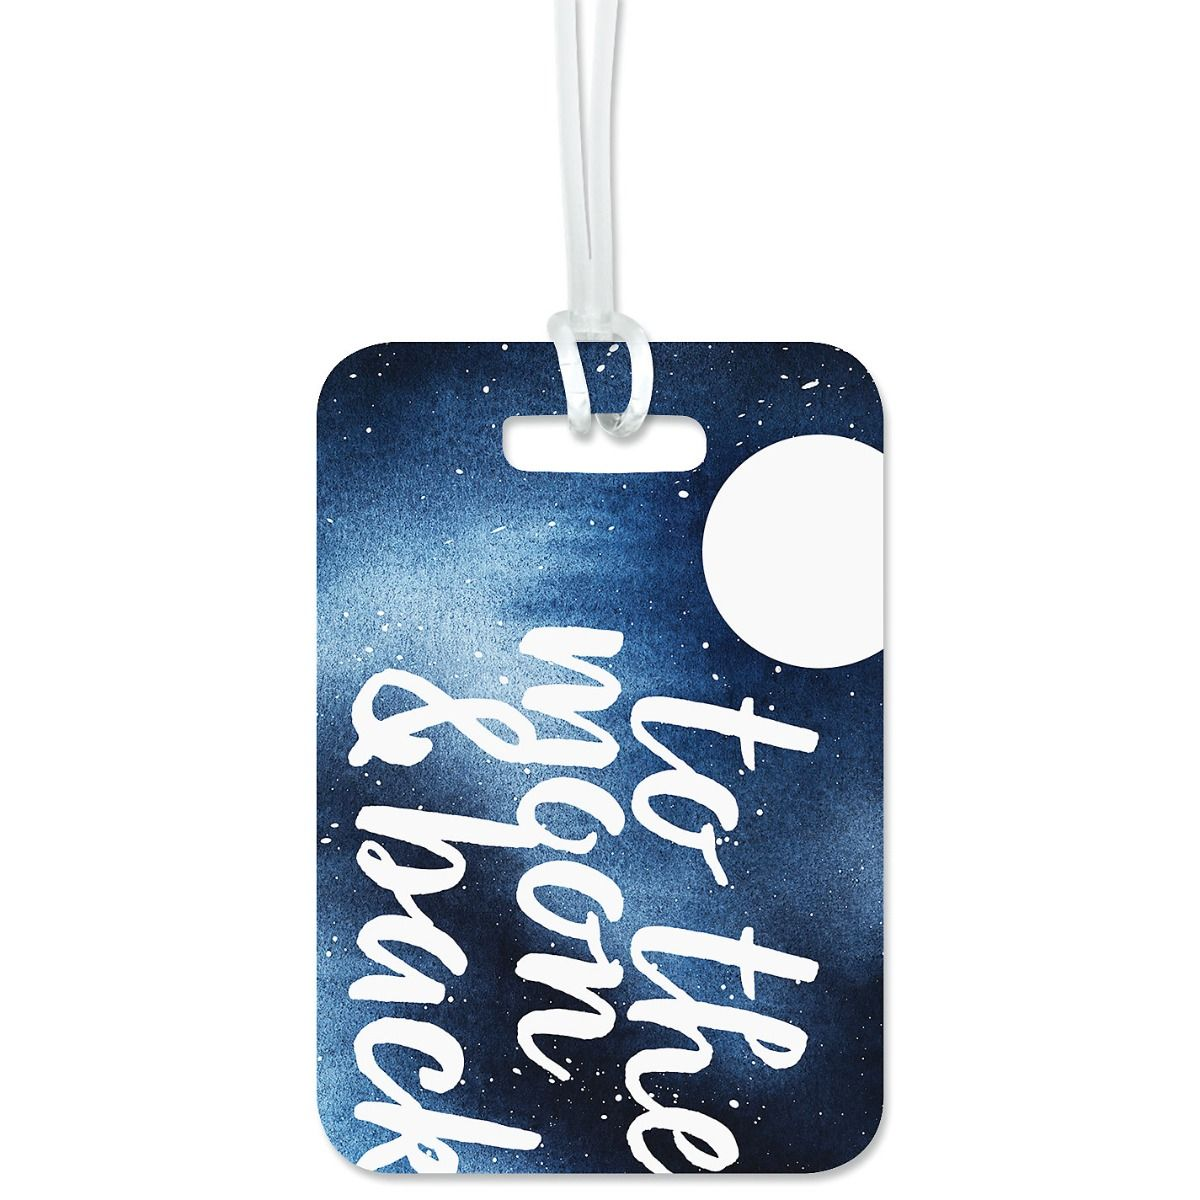 To The Moon Luggage Tag